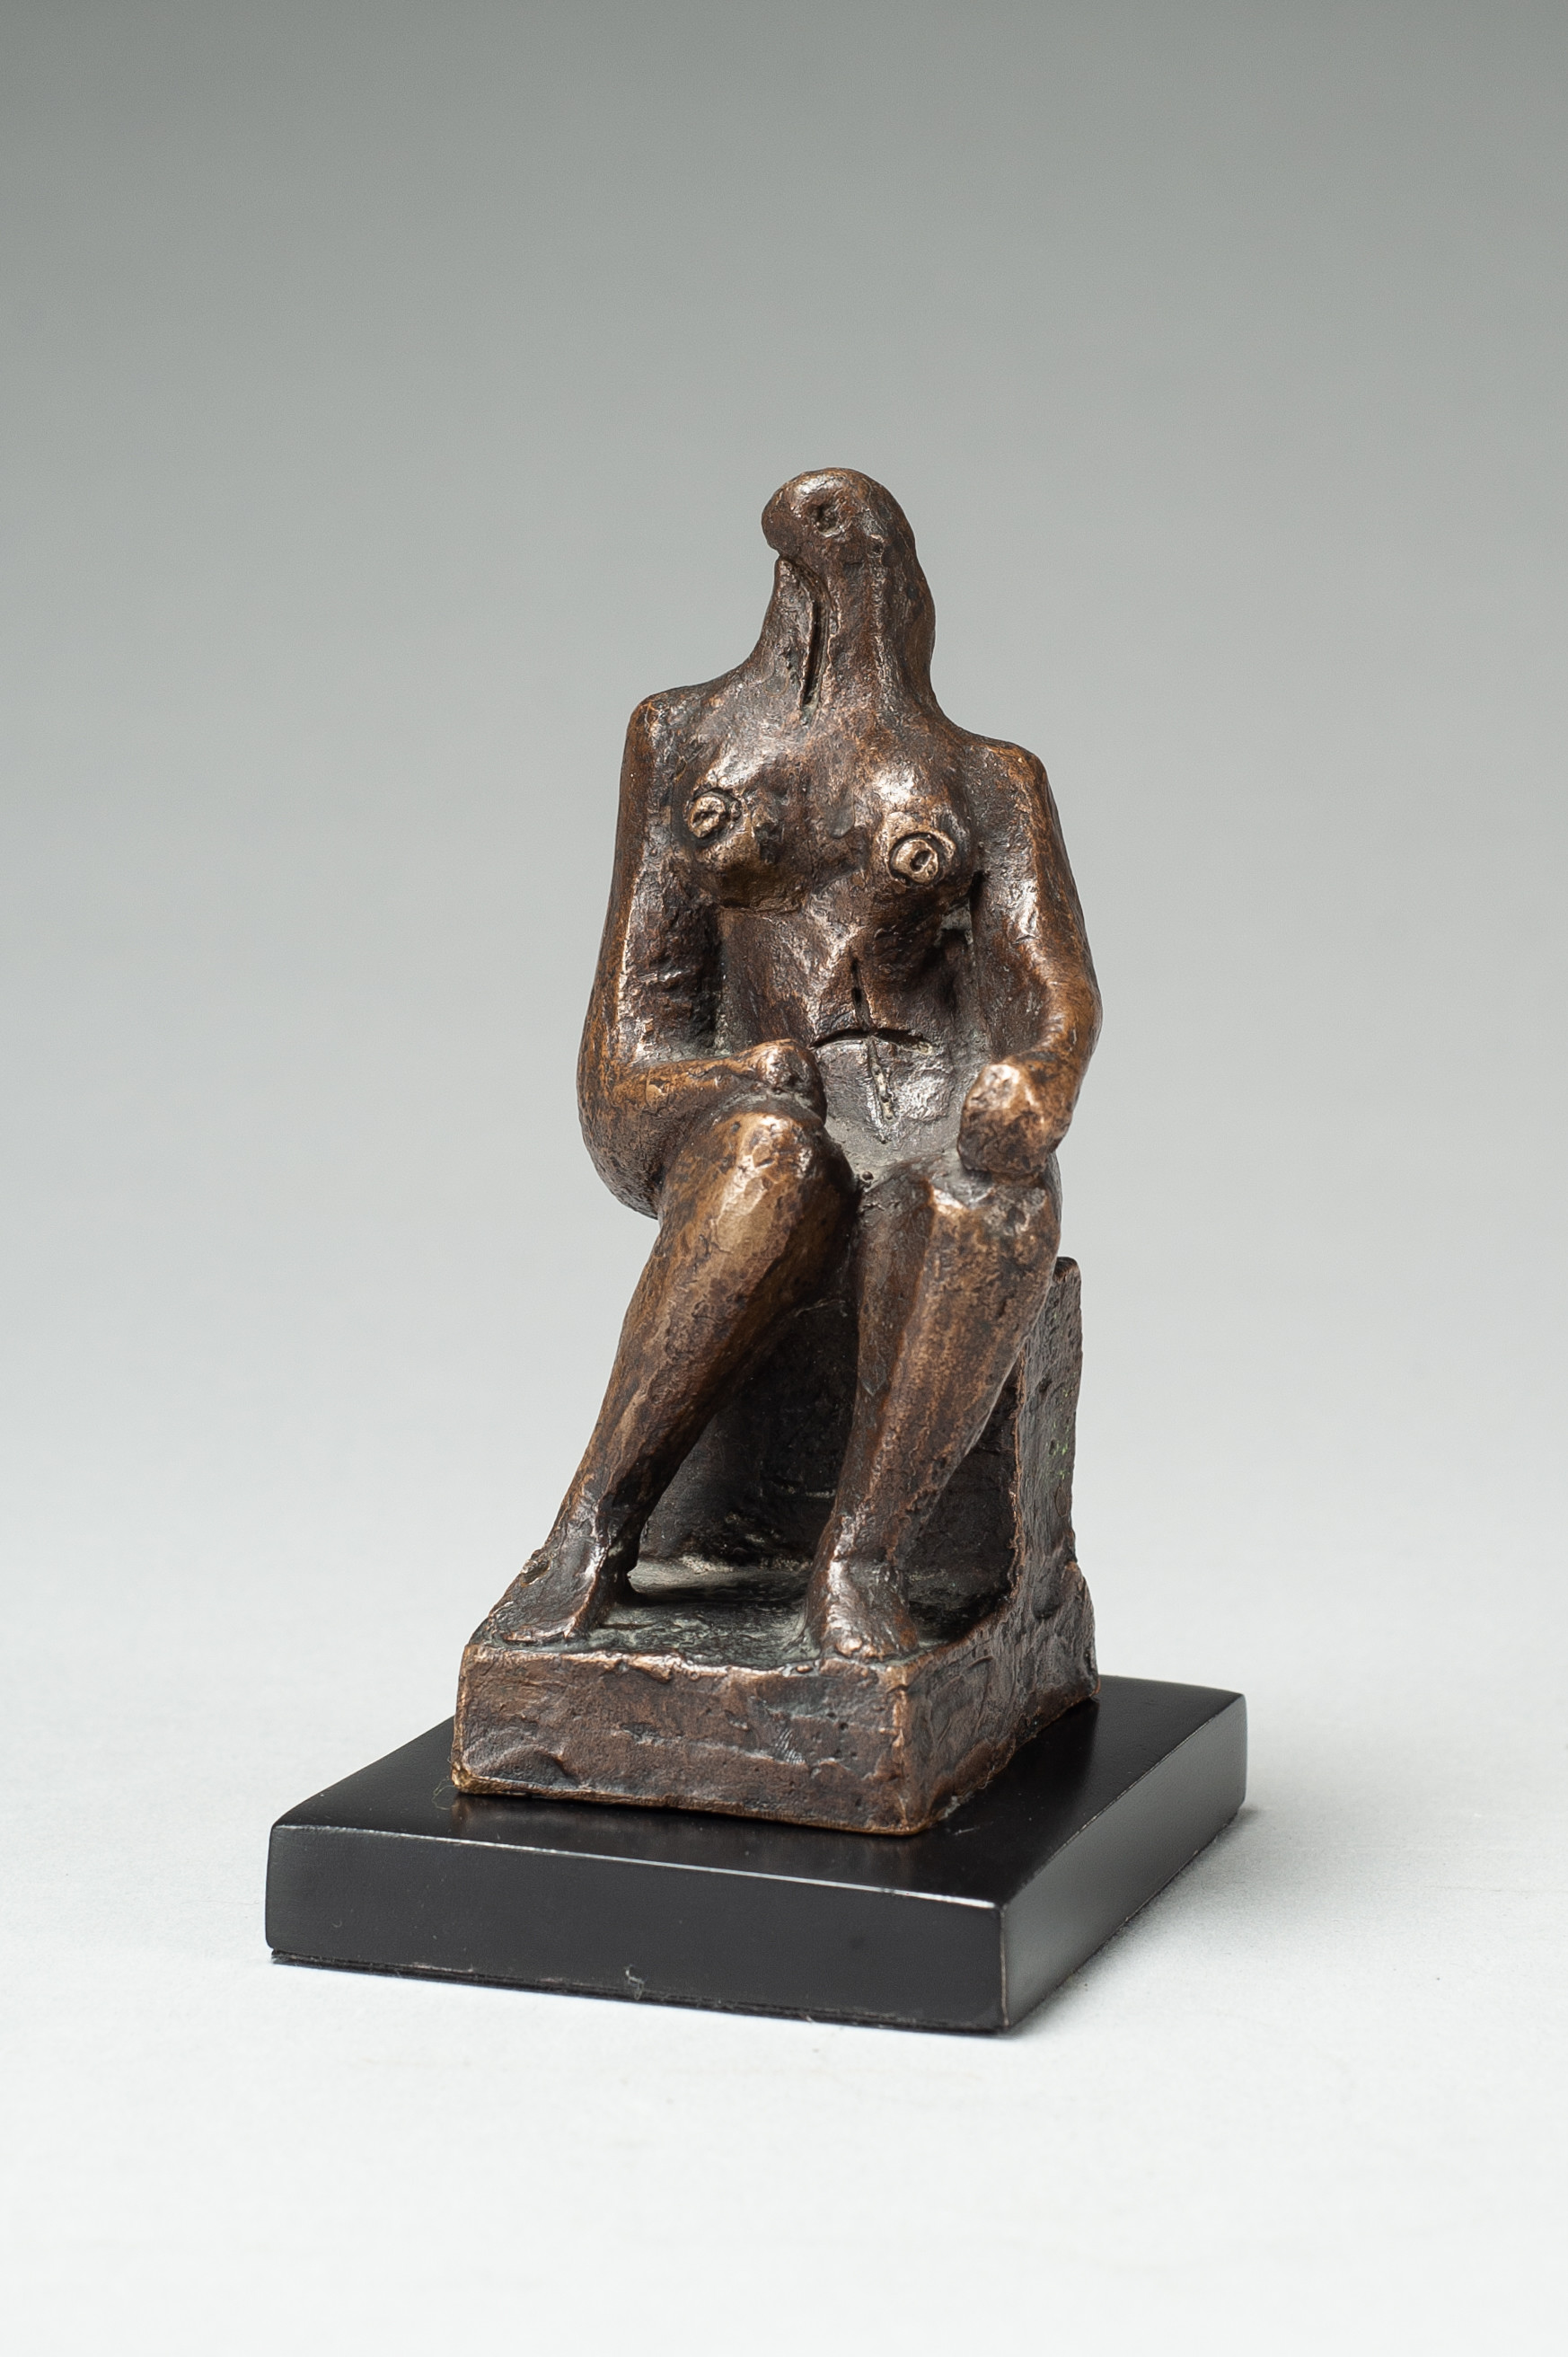 Henry Moore, Small Seated Figure, courtesy Bowman Sculpture